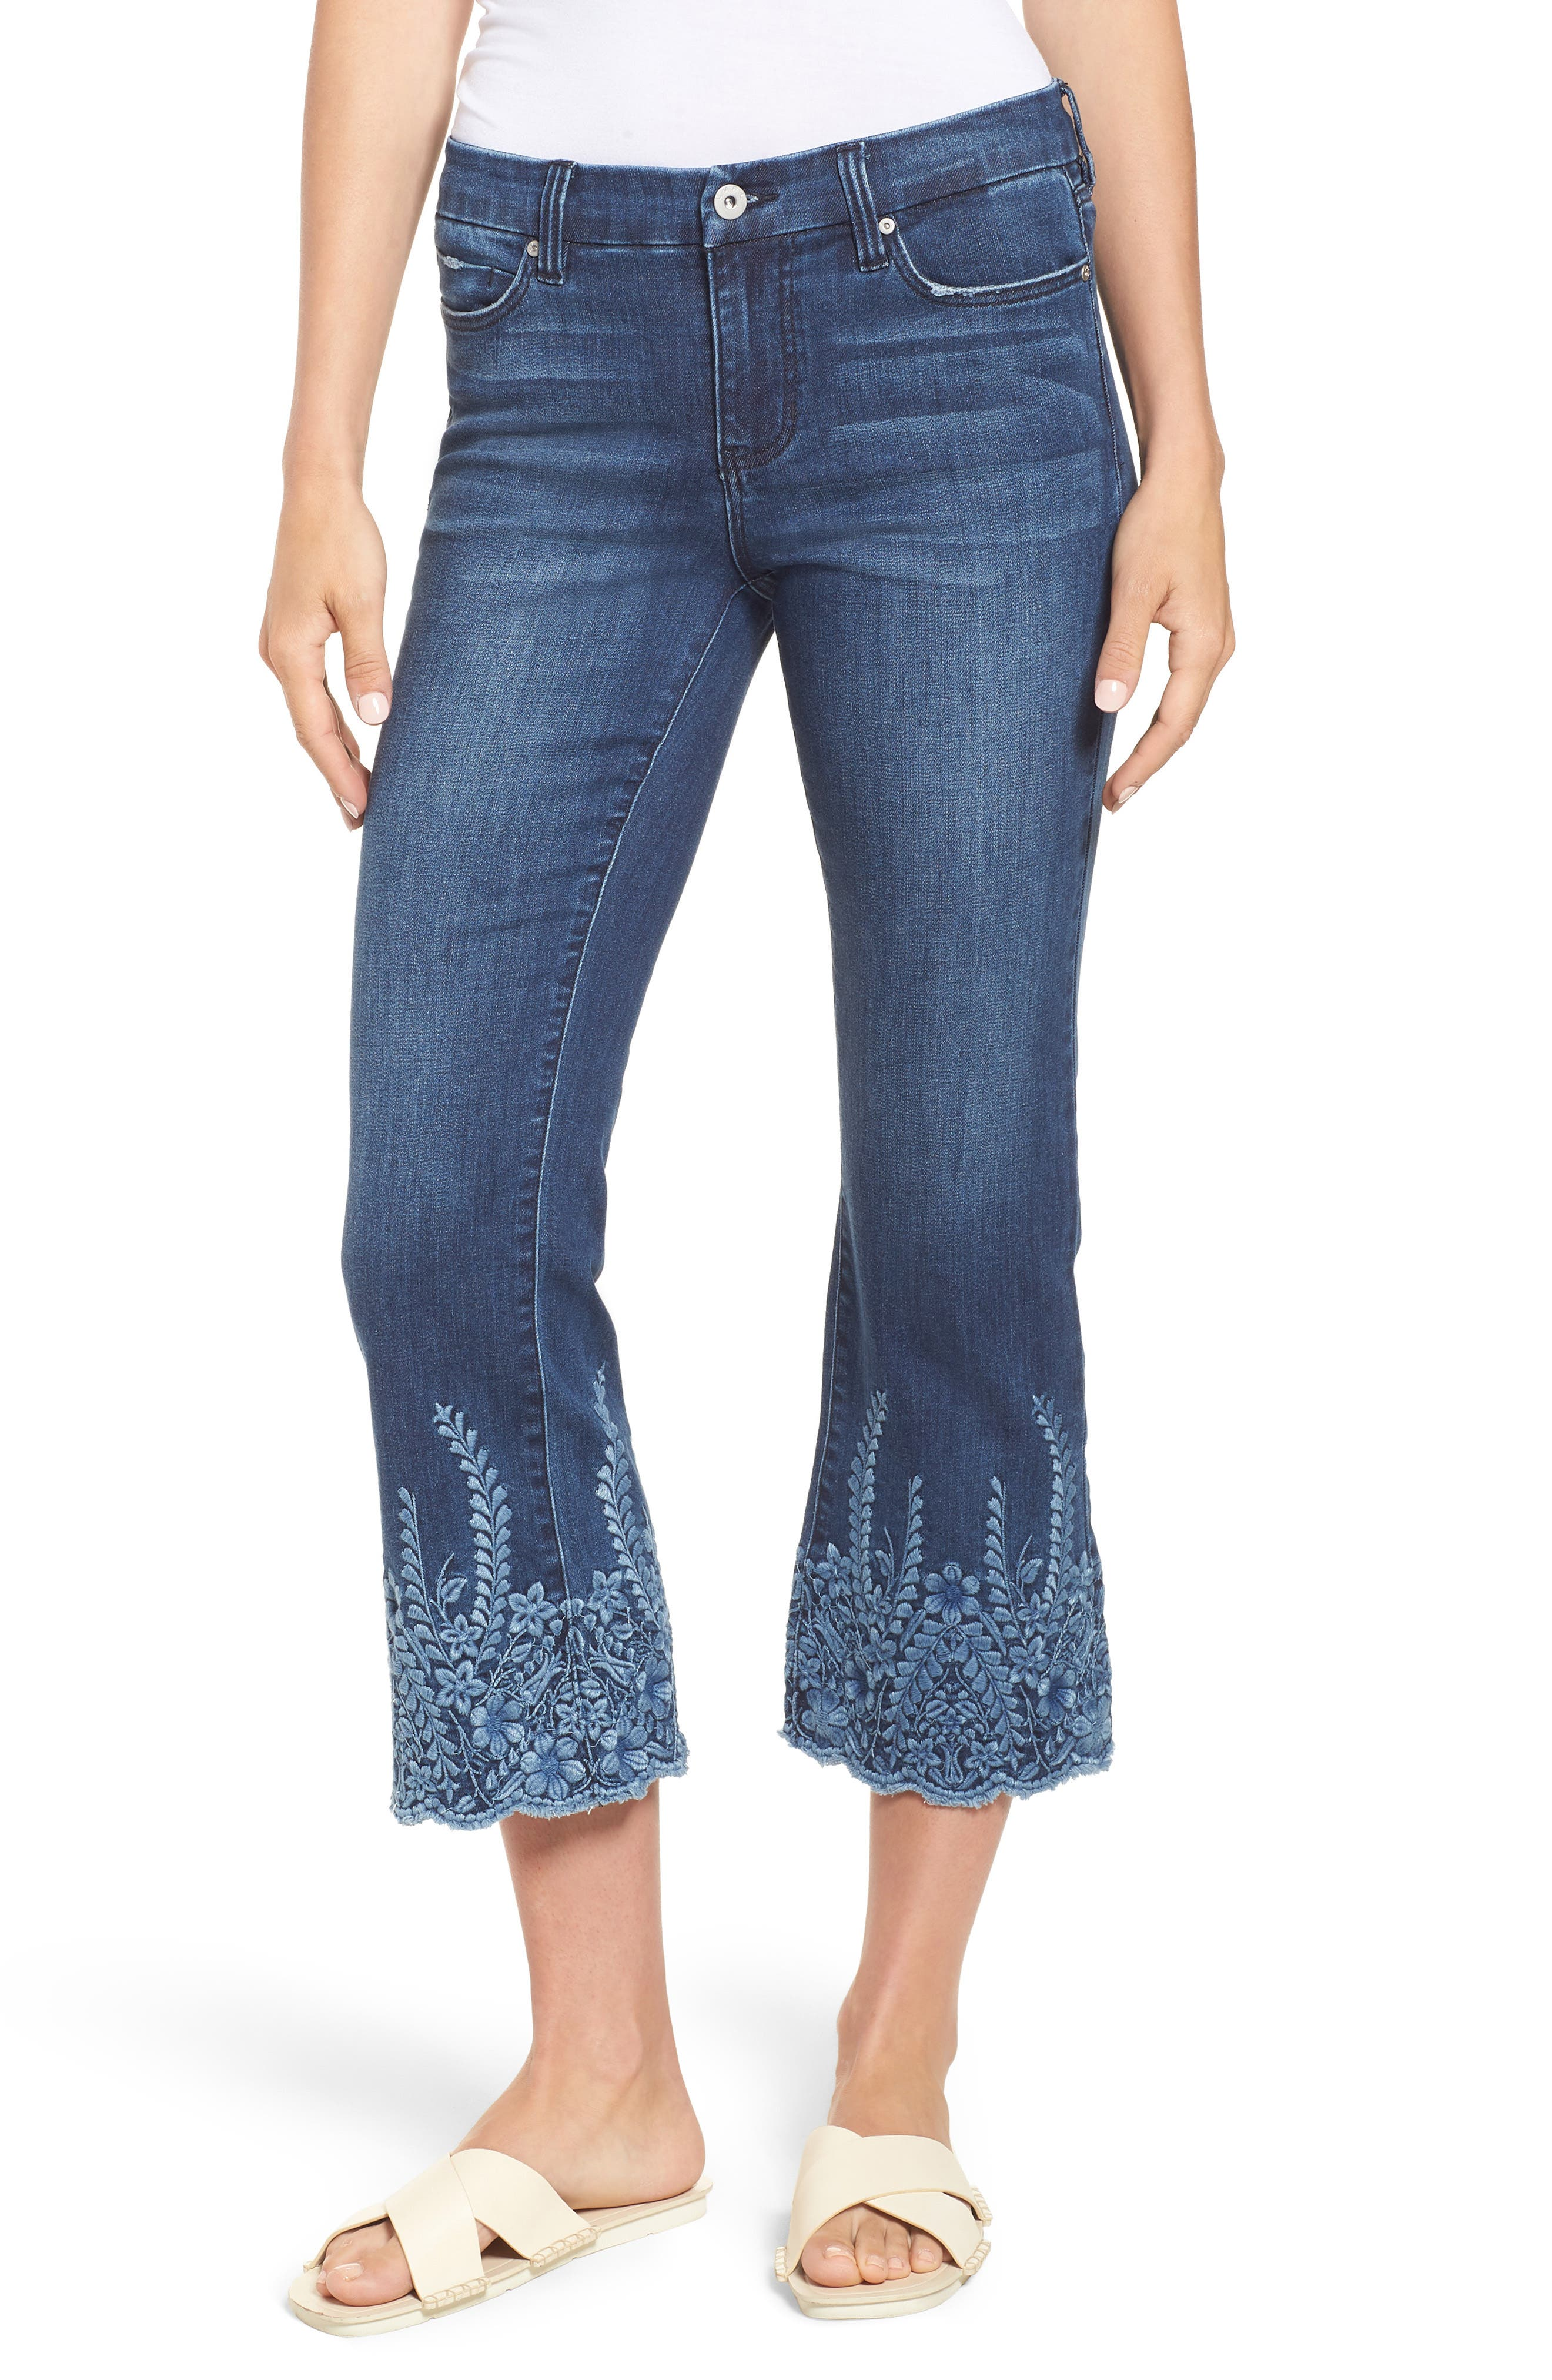 LVPL by Liverpool Coco Embroidered Hem Crop Jeans,                         Main,                         color, Willow Wash